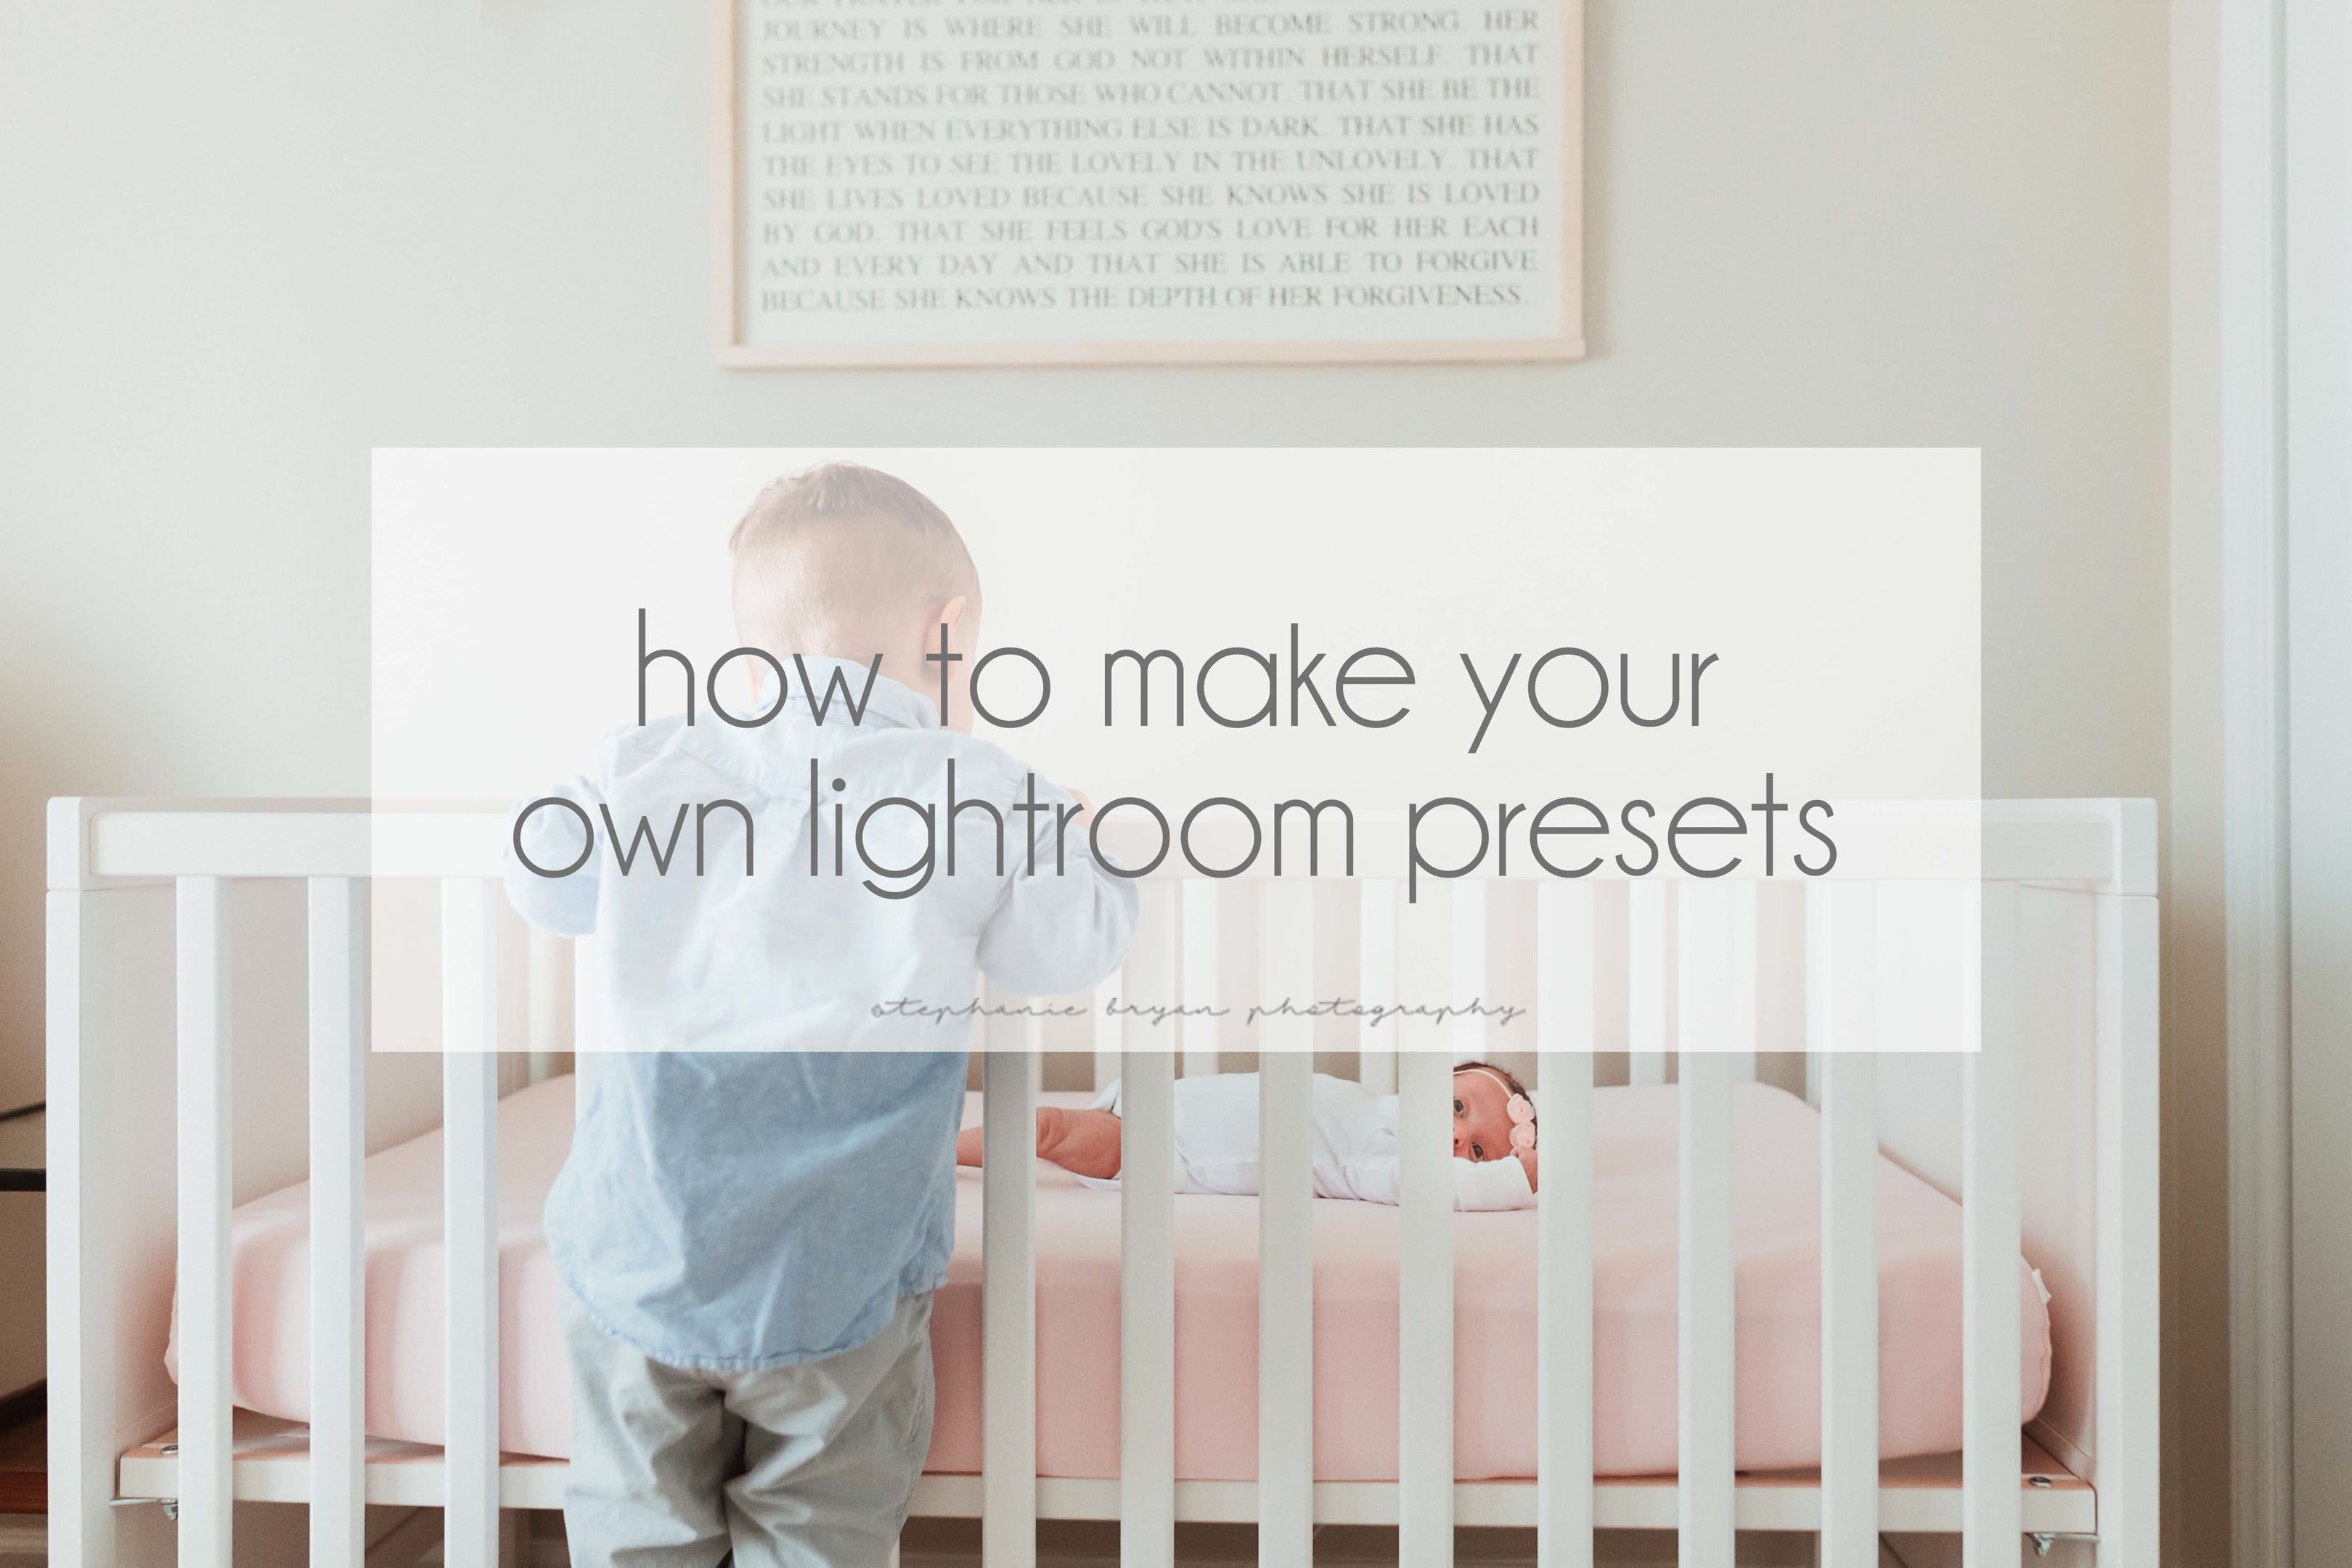 Stephanie Bryan Photography How to make your own lightroom presets